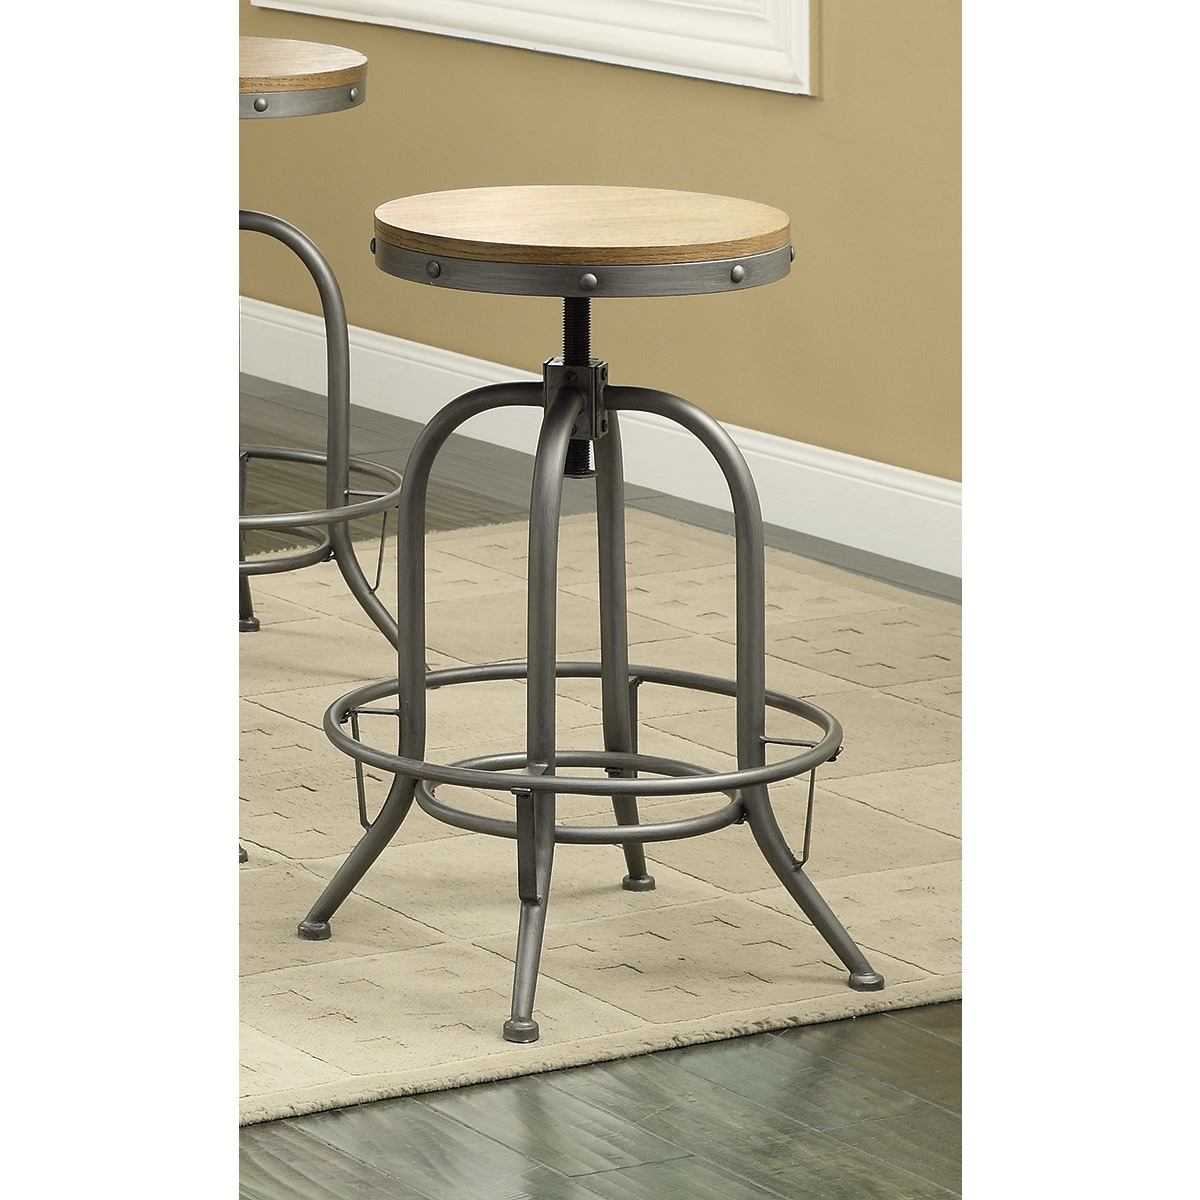 Groovy Coaster Company Wood And Metal Bar Stool Gmtry Best Dining Table And Chair Ideas Images Gmtryco